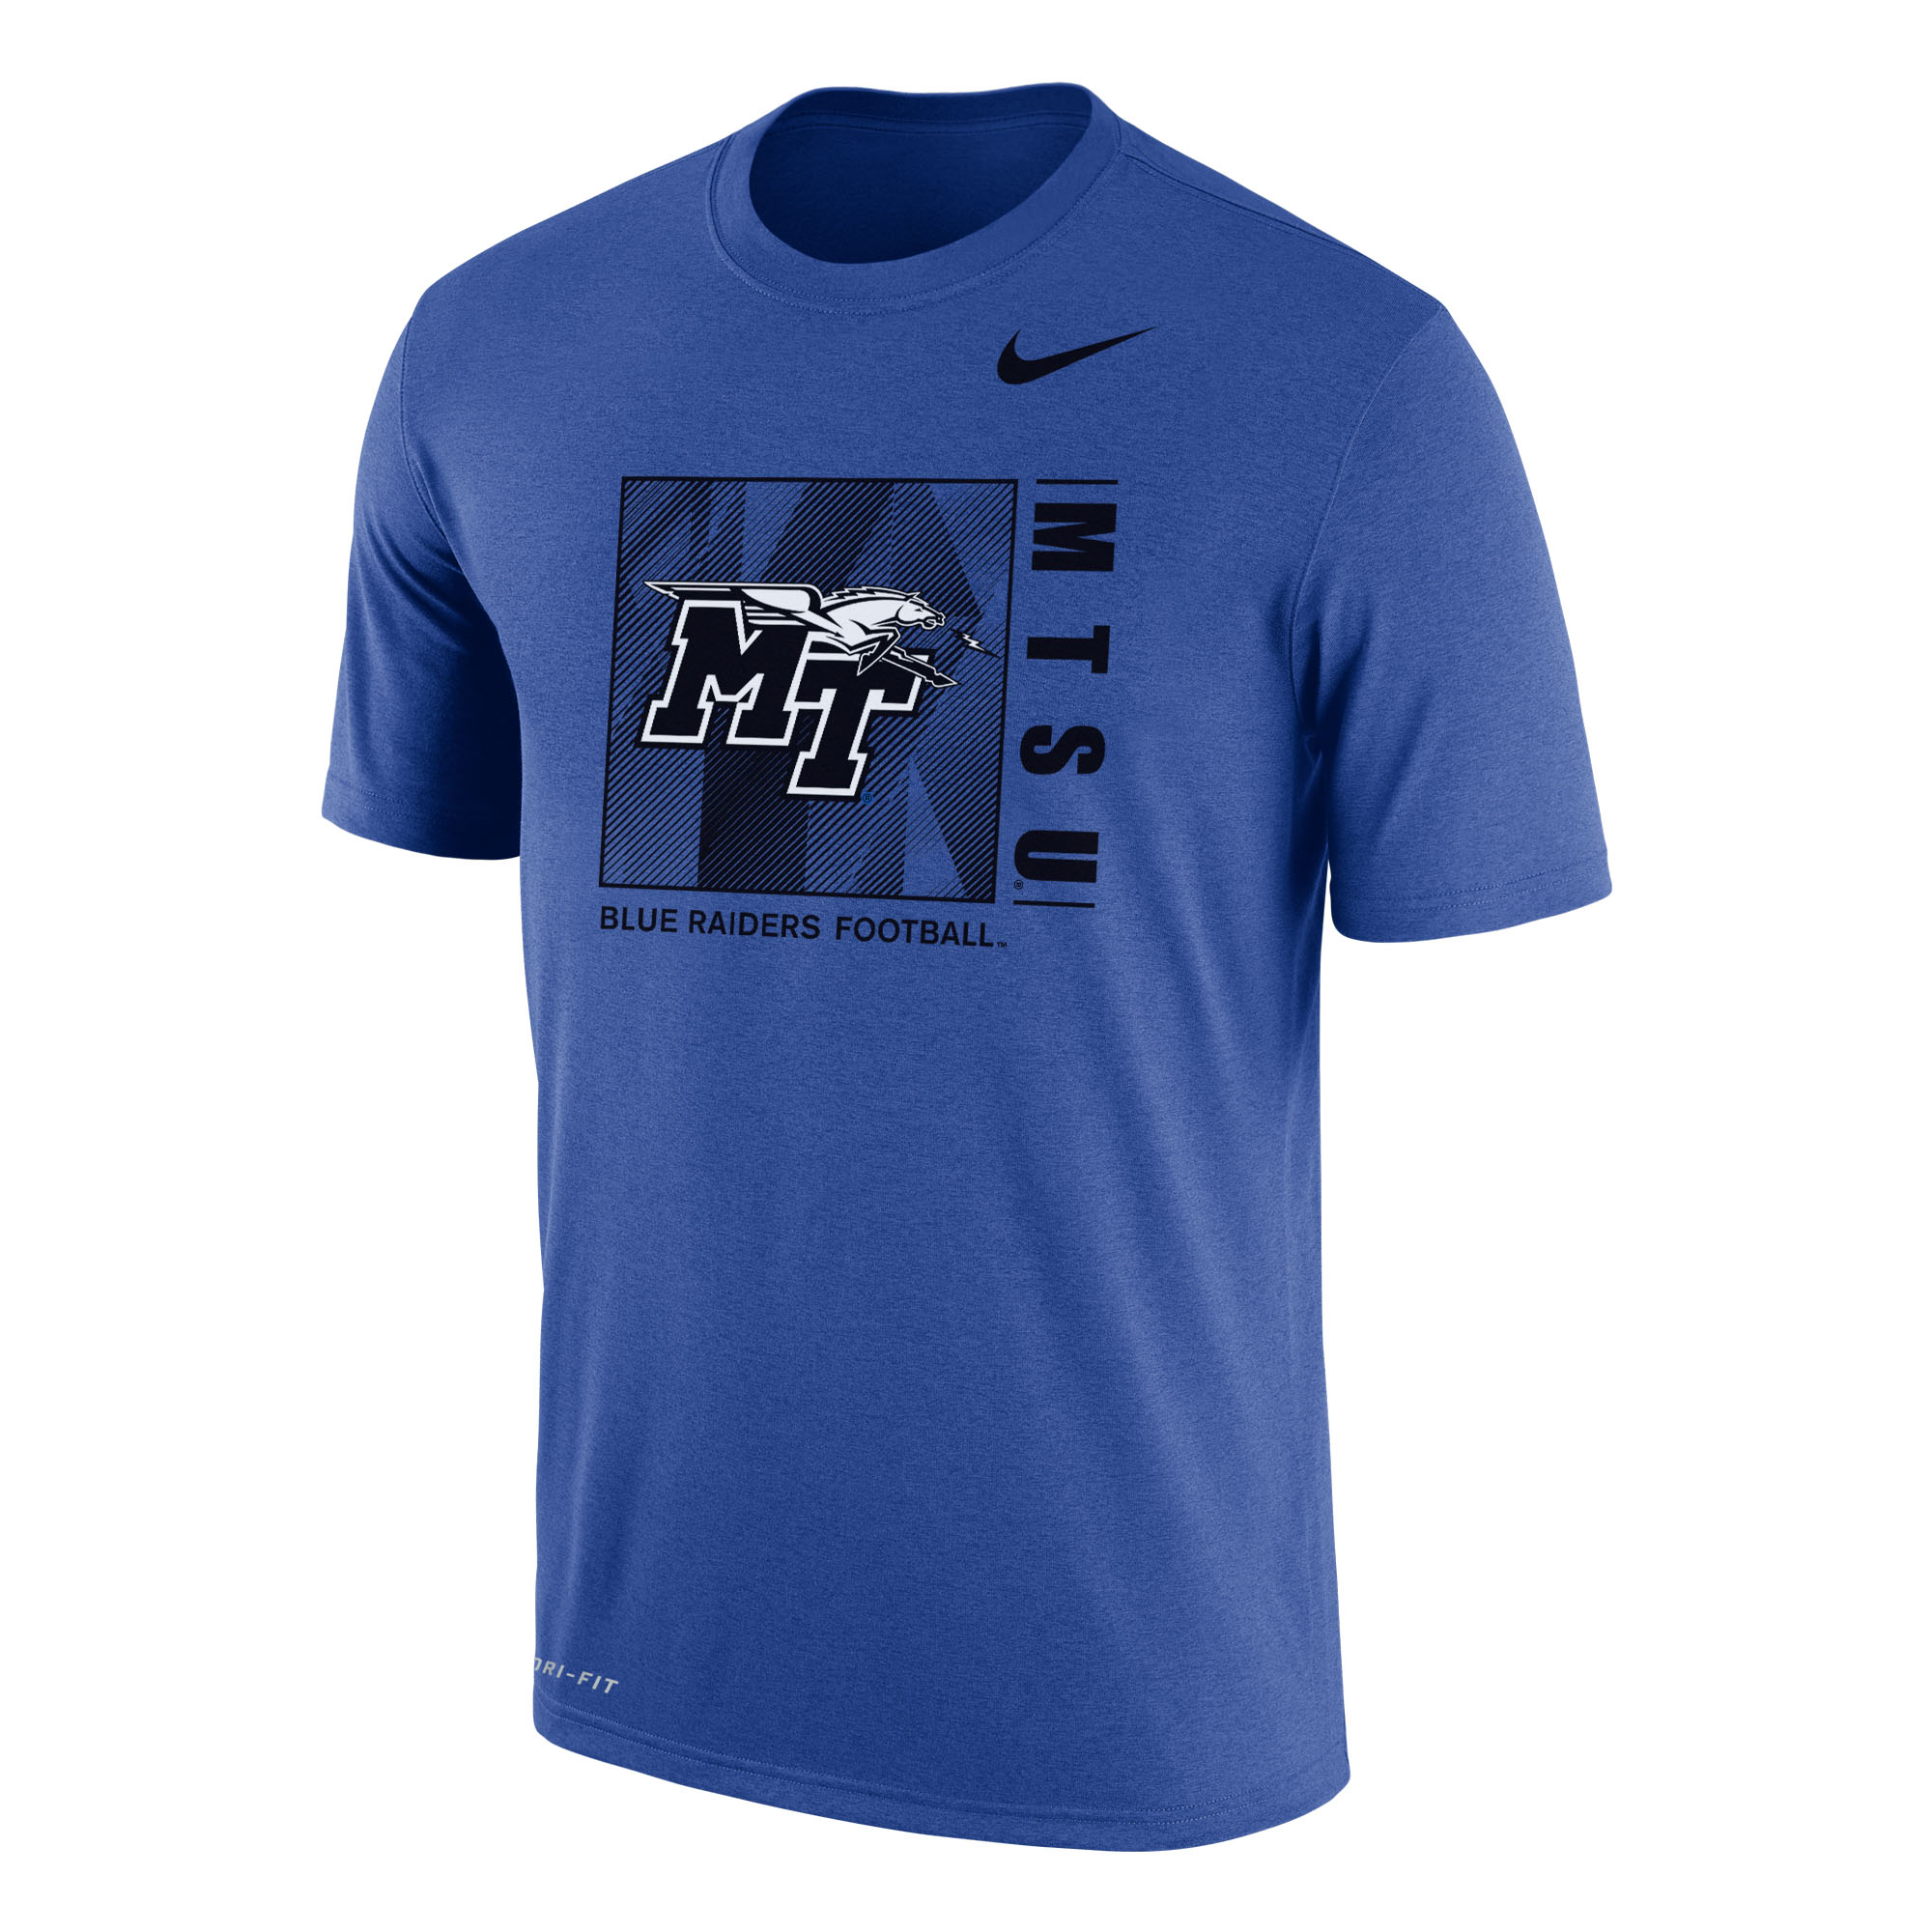 MTSU Blue Raiders Football Nike® Sideline DriFit Cotton Shirt